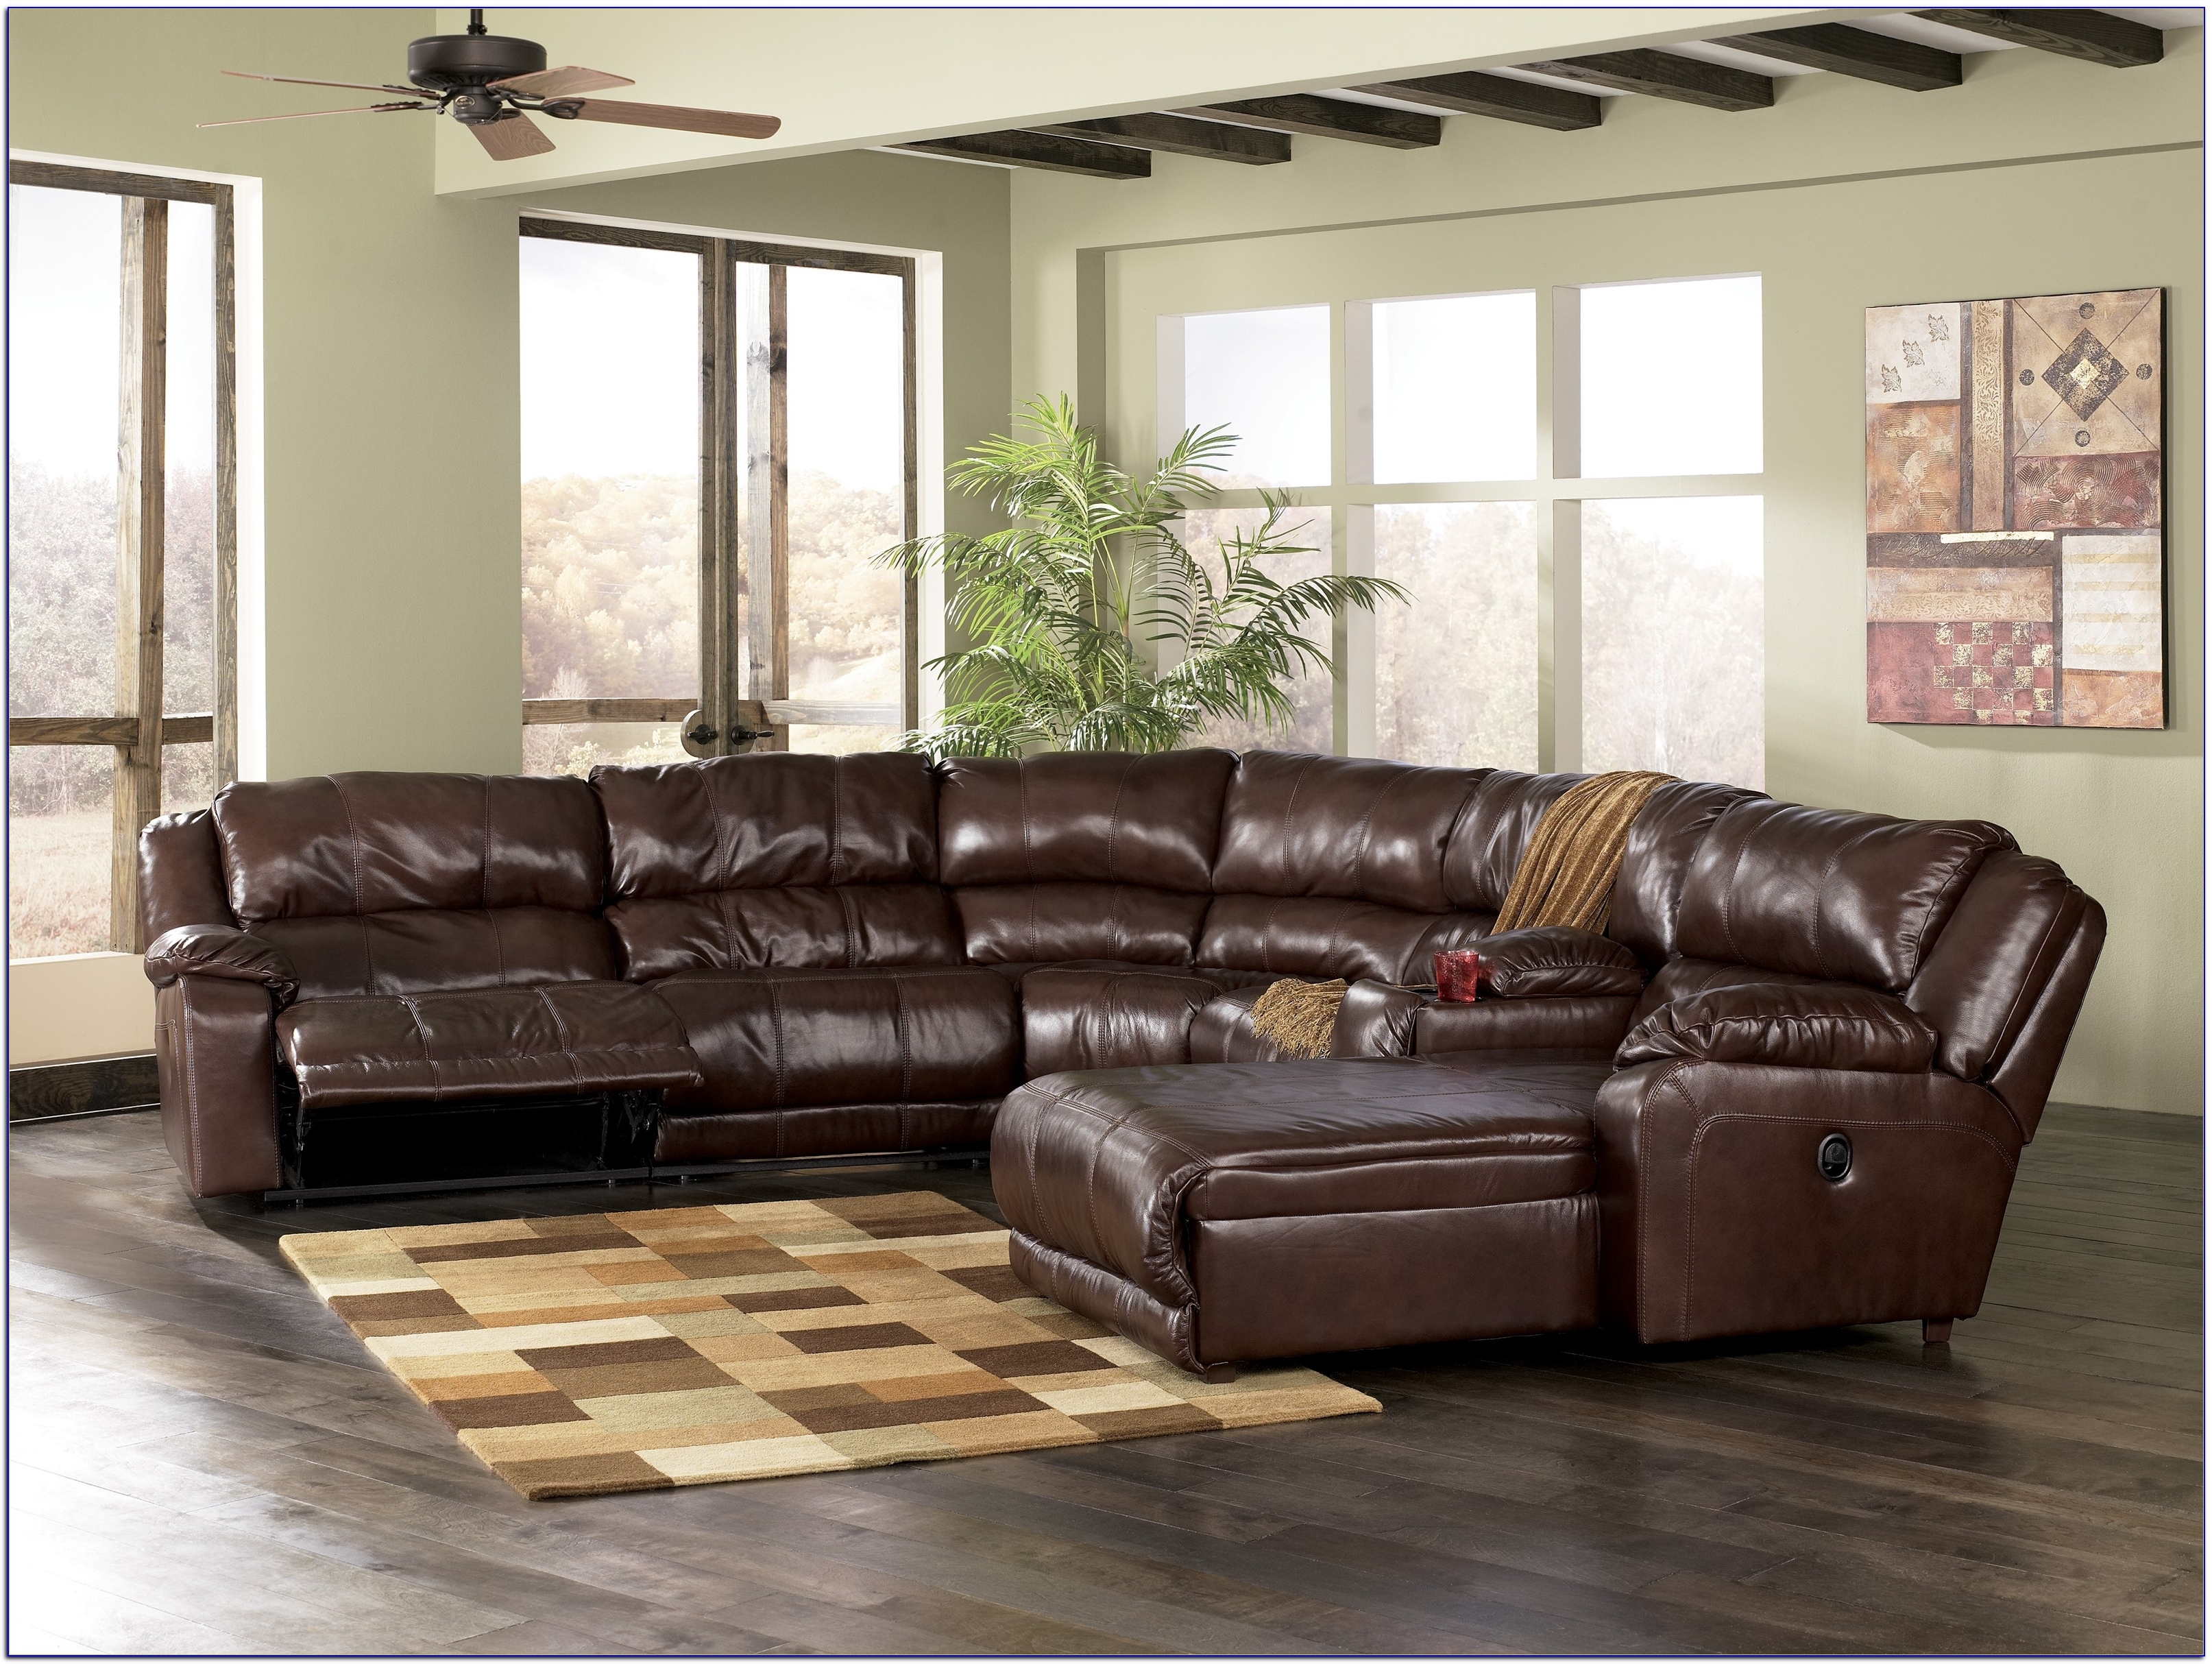 Most Recent Sectional Sofas With Recliners And Chaise Pertaining To Small Sectionals For Apartments 72 Inch Sofa Leather Sectional (View 5 of 15)